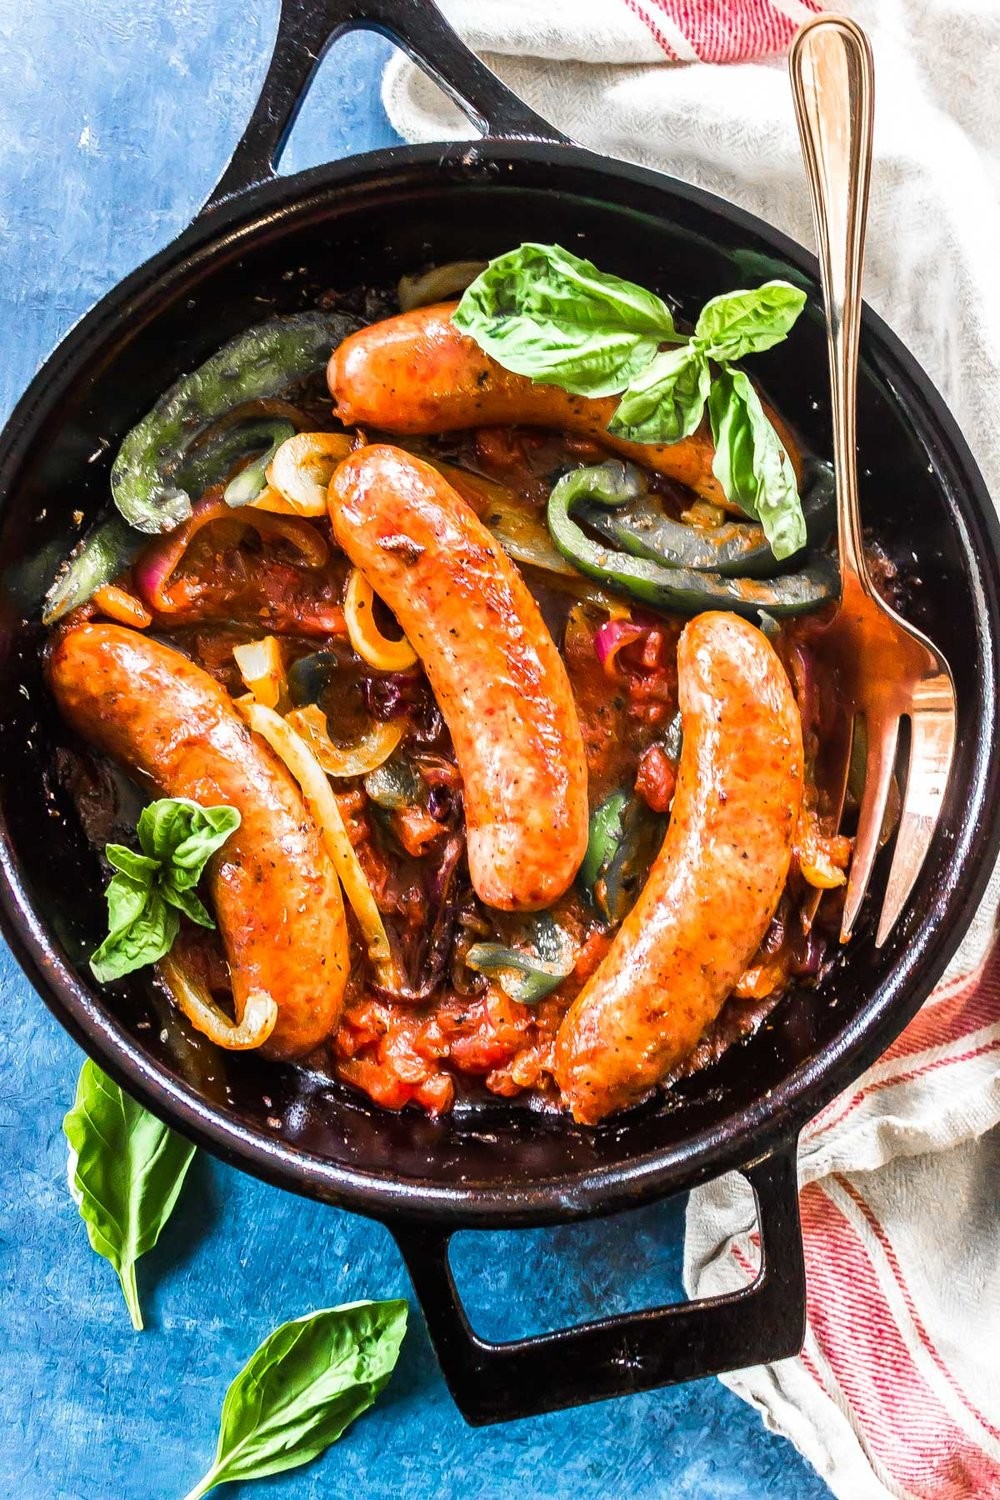 Keto Italian Sausage, Peppers, and Onions in a cast iron skillet with fresh basil.